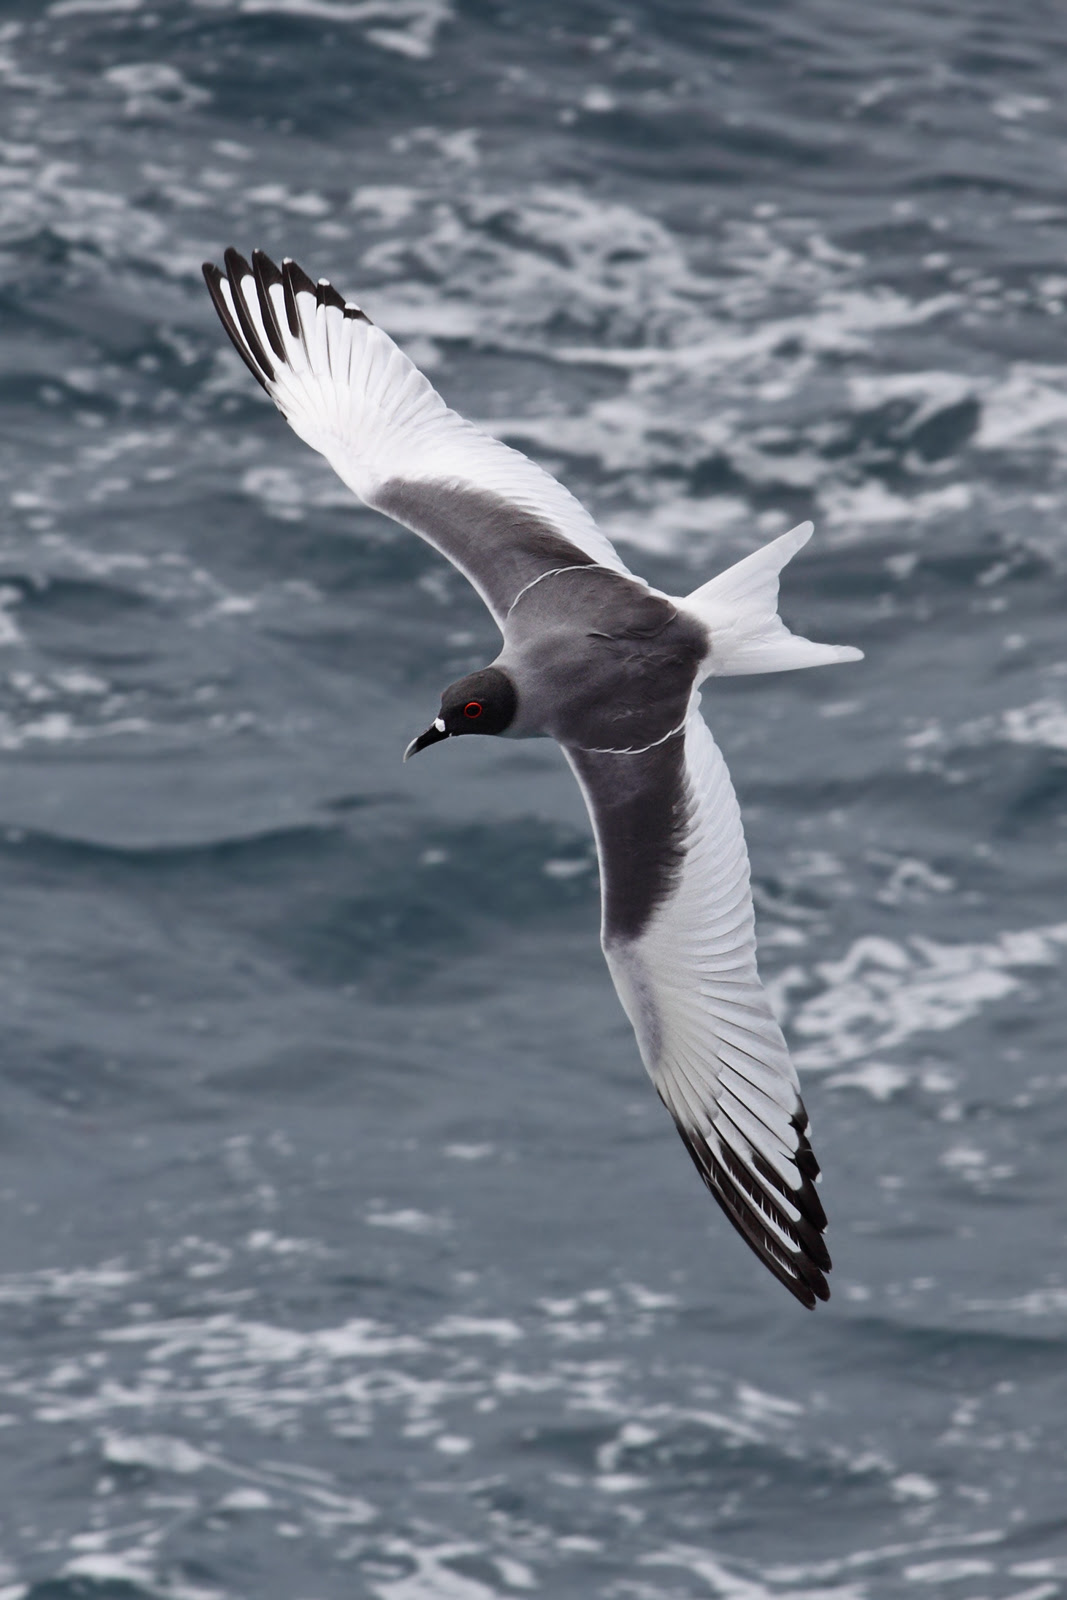 http://upload.wikimedia.org/wikipedia/commons/8/84/Swallow-tailed-gull-dorsal.jpg